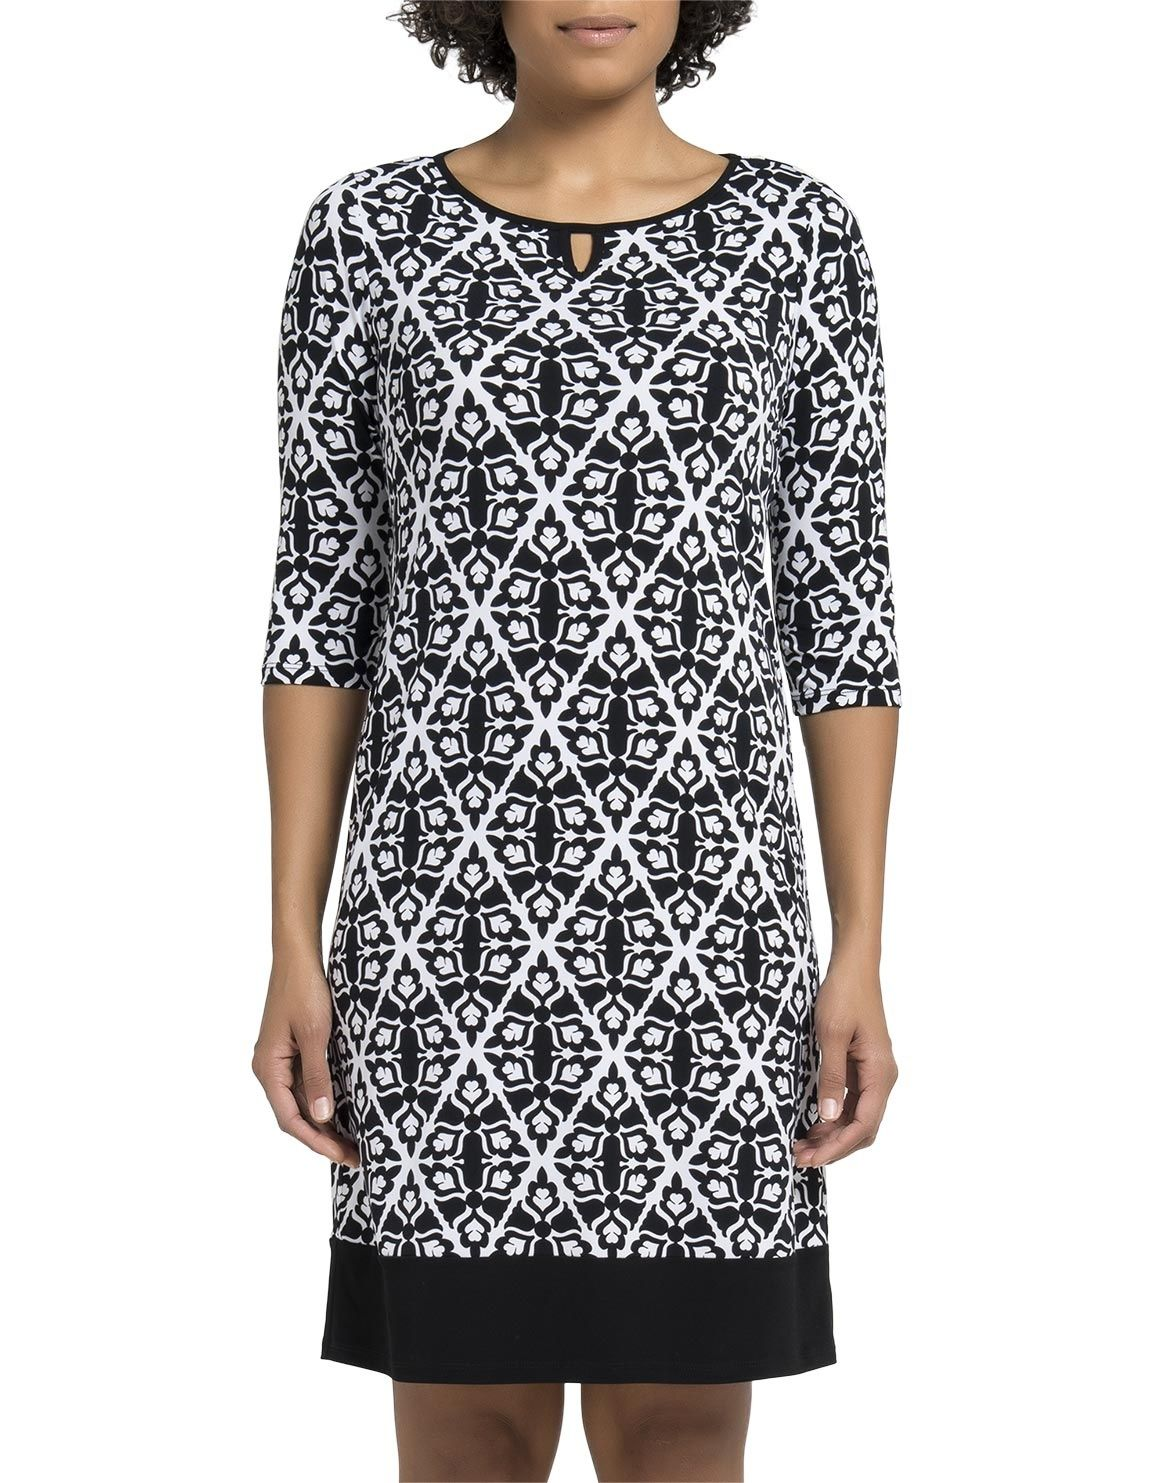 Woolworths black and white dresses